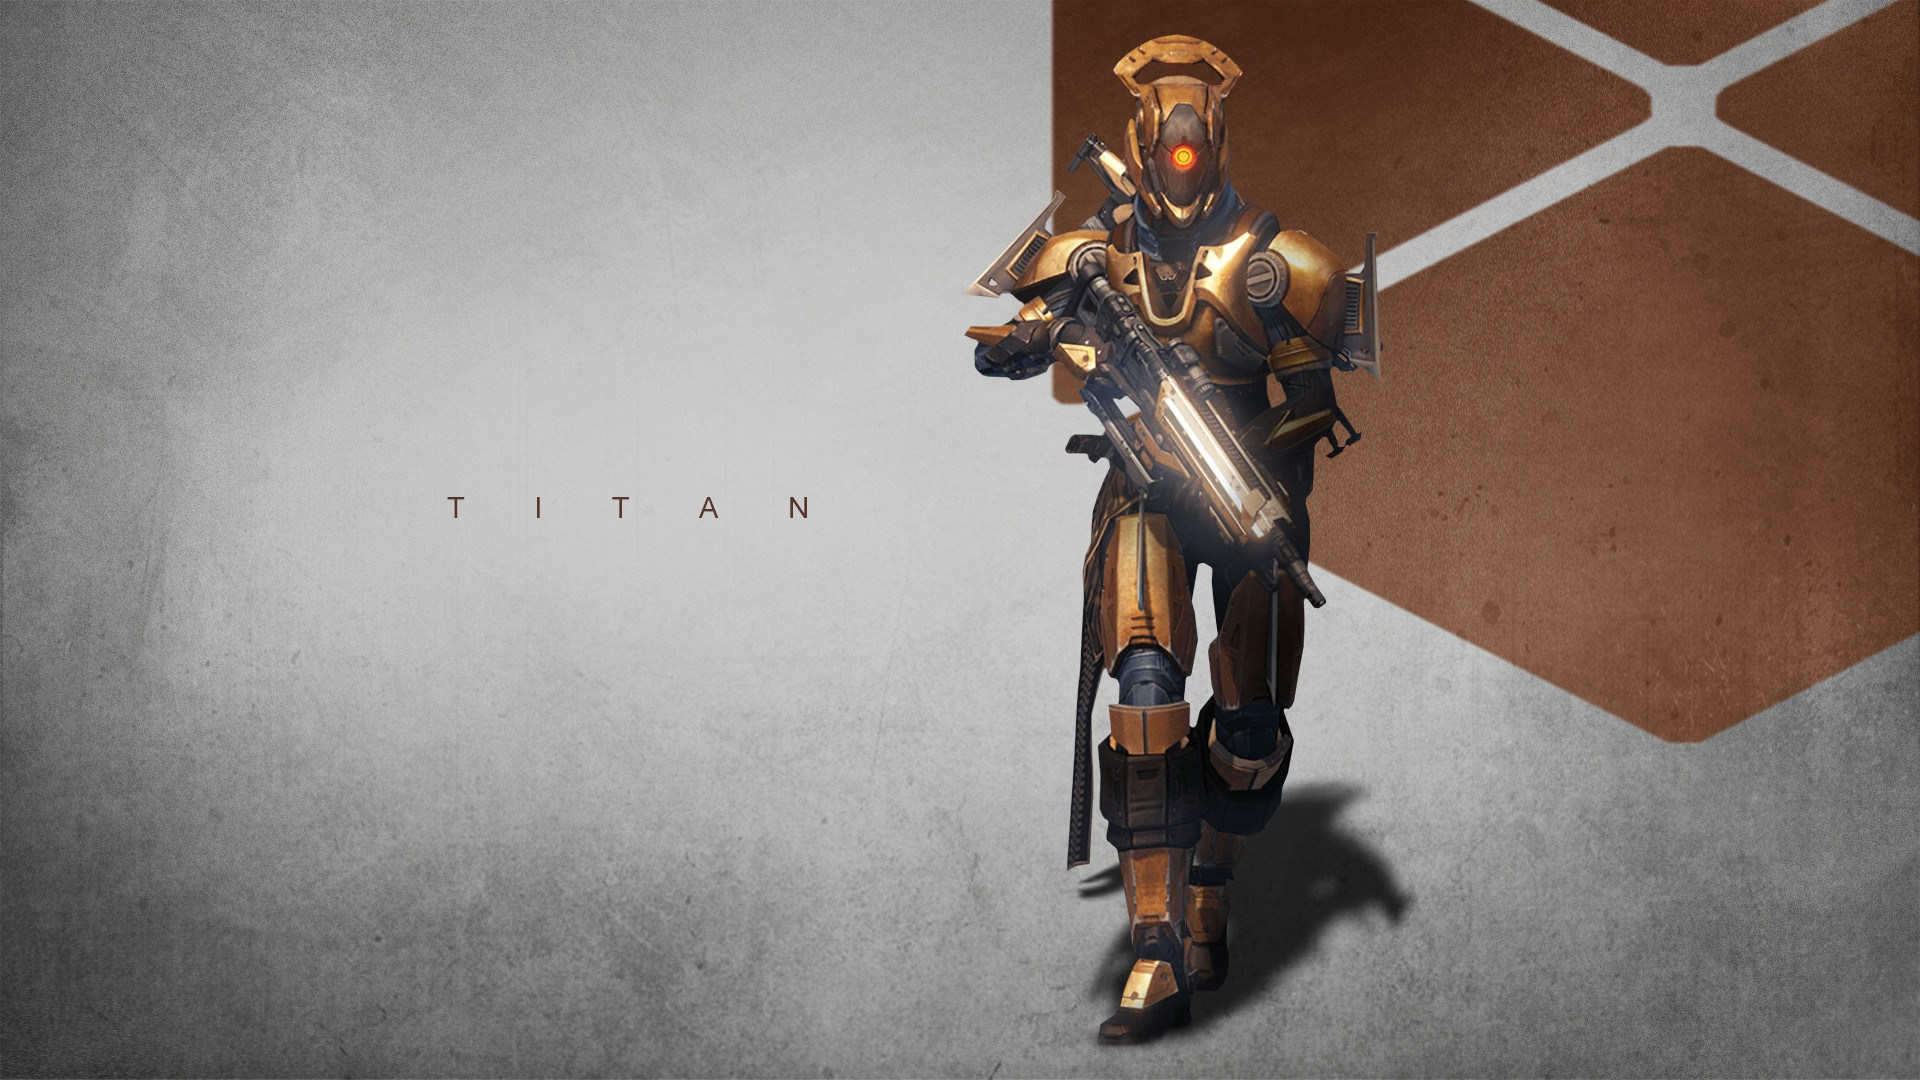 Awesome New Destiny Wallpapers Destiny Newsnet 1920x1080